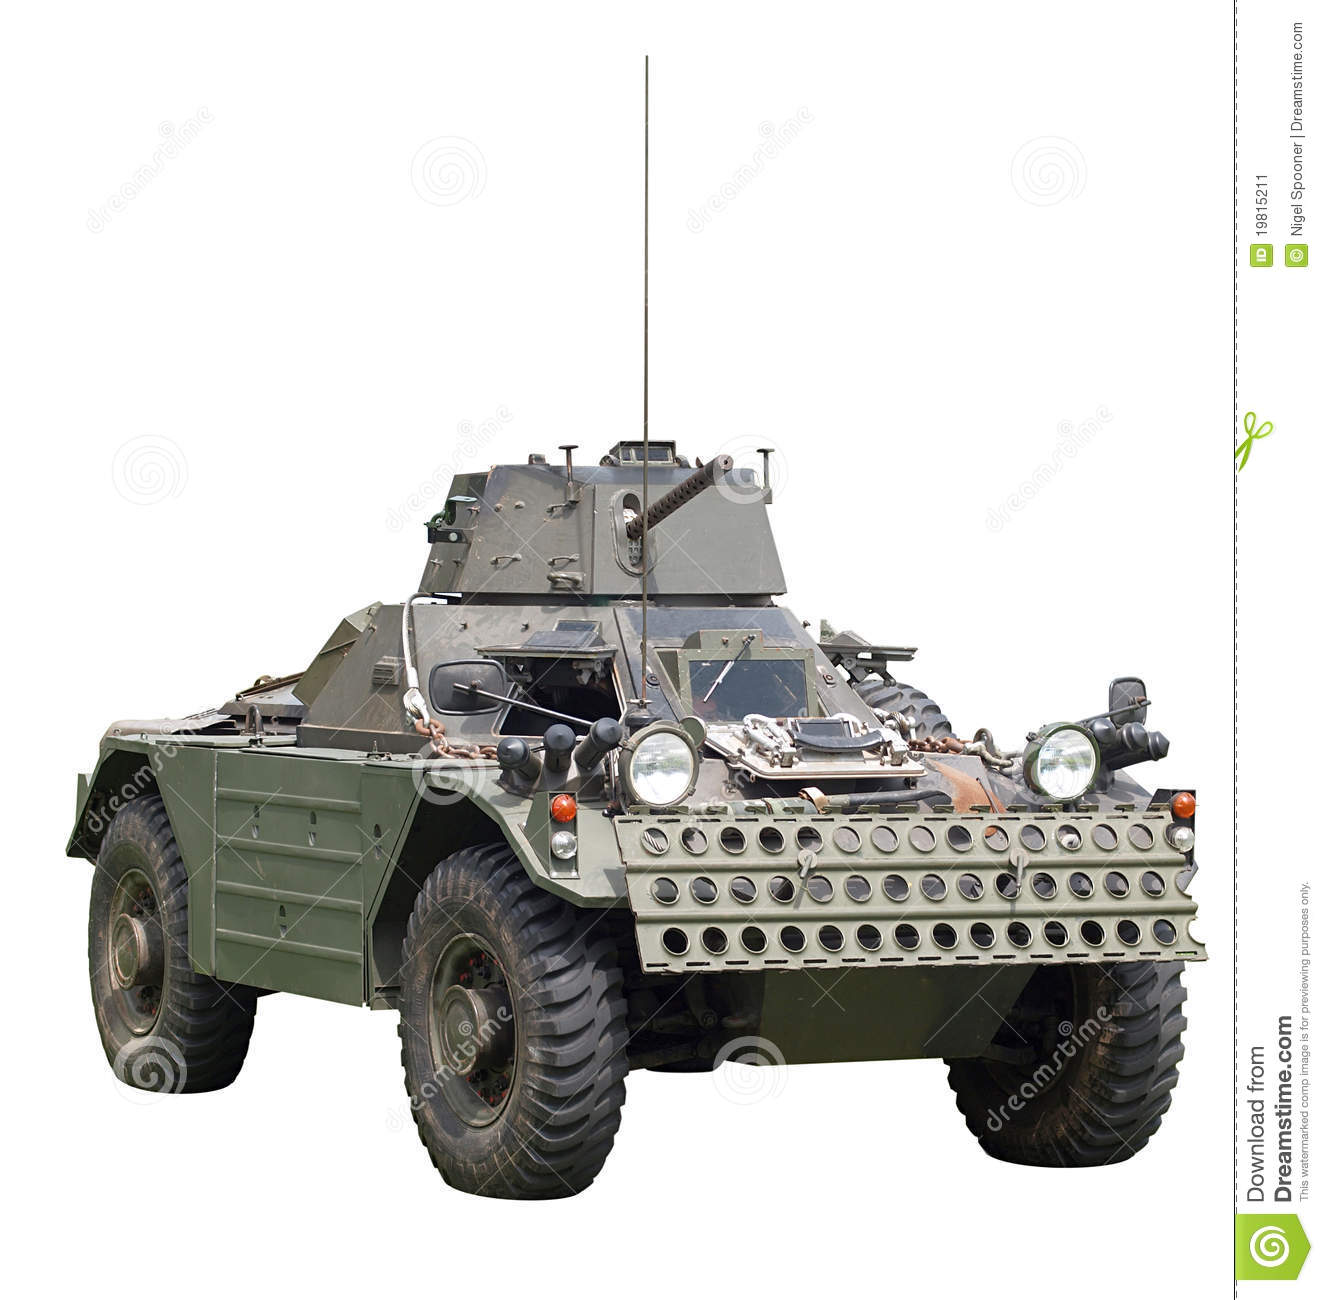 Daimler Ferret Scout Armoured Car Stock Image - Image: 19815211